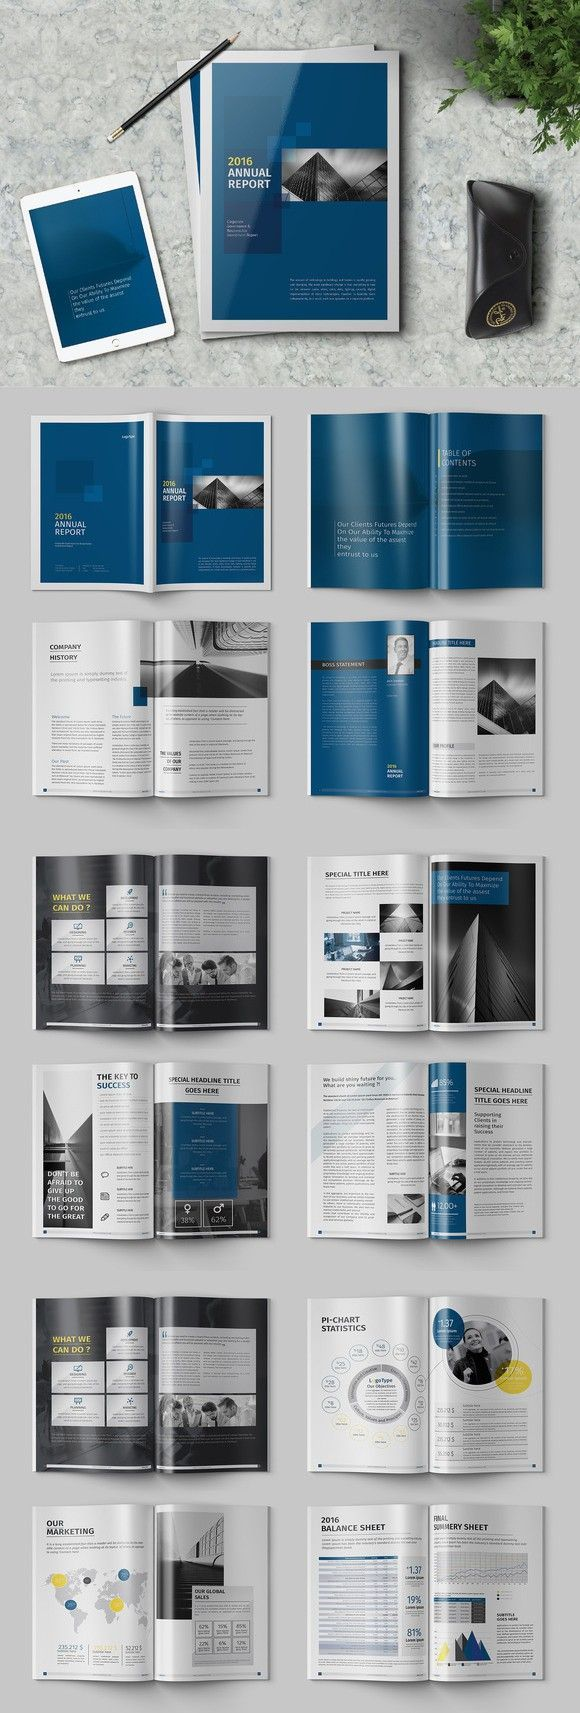 The Blue Annual Report #annualreports The Blue Annual Report #annualreports